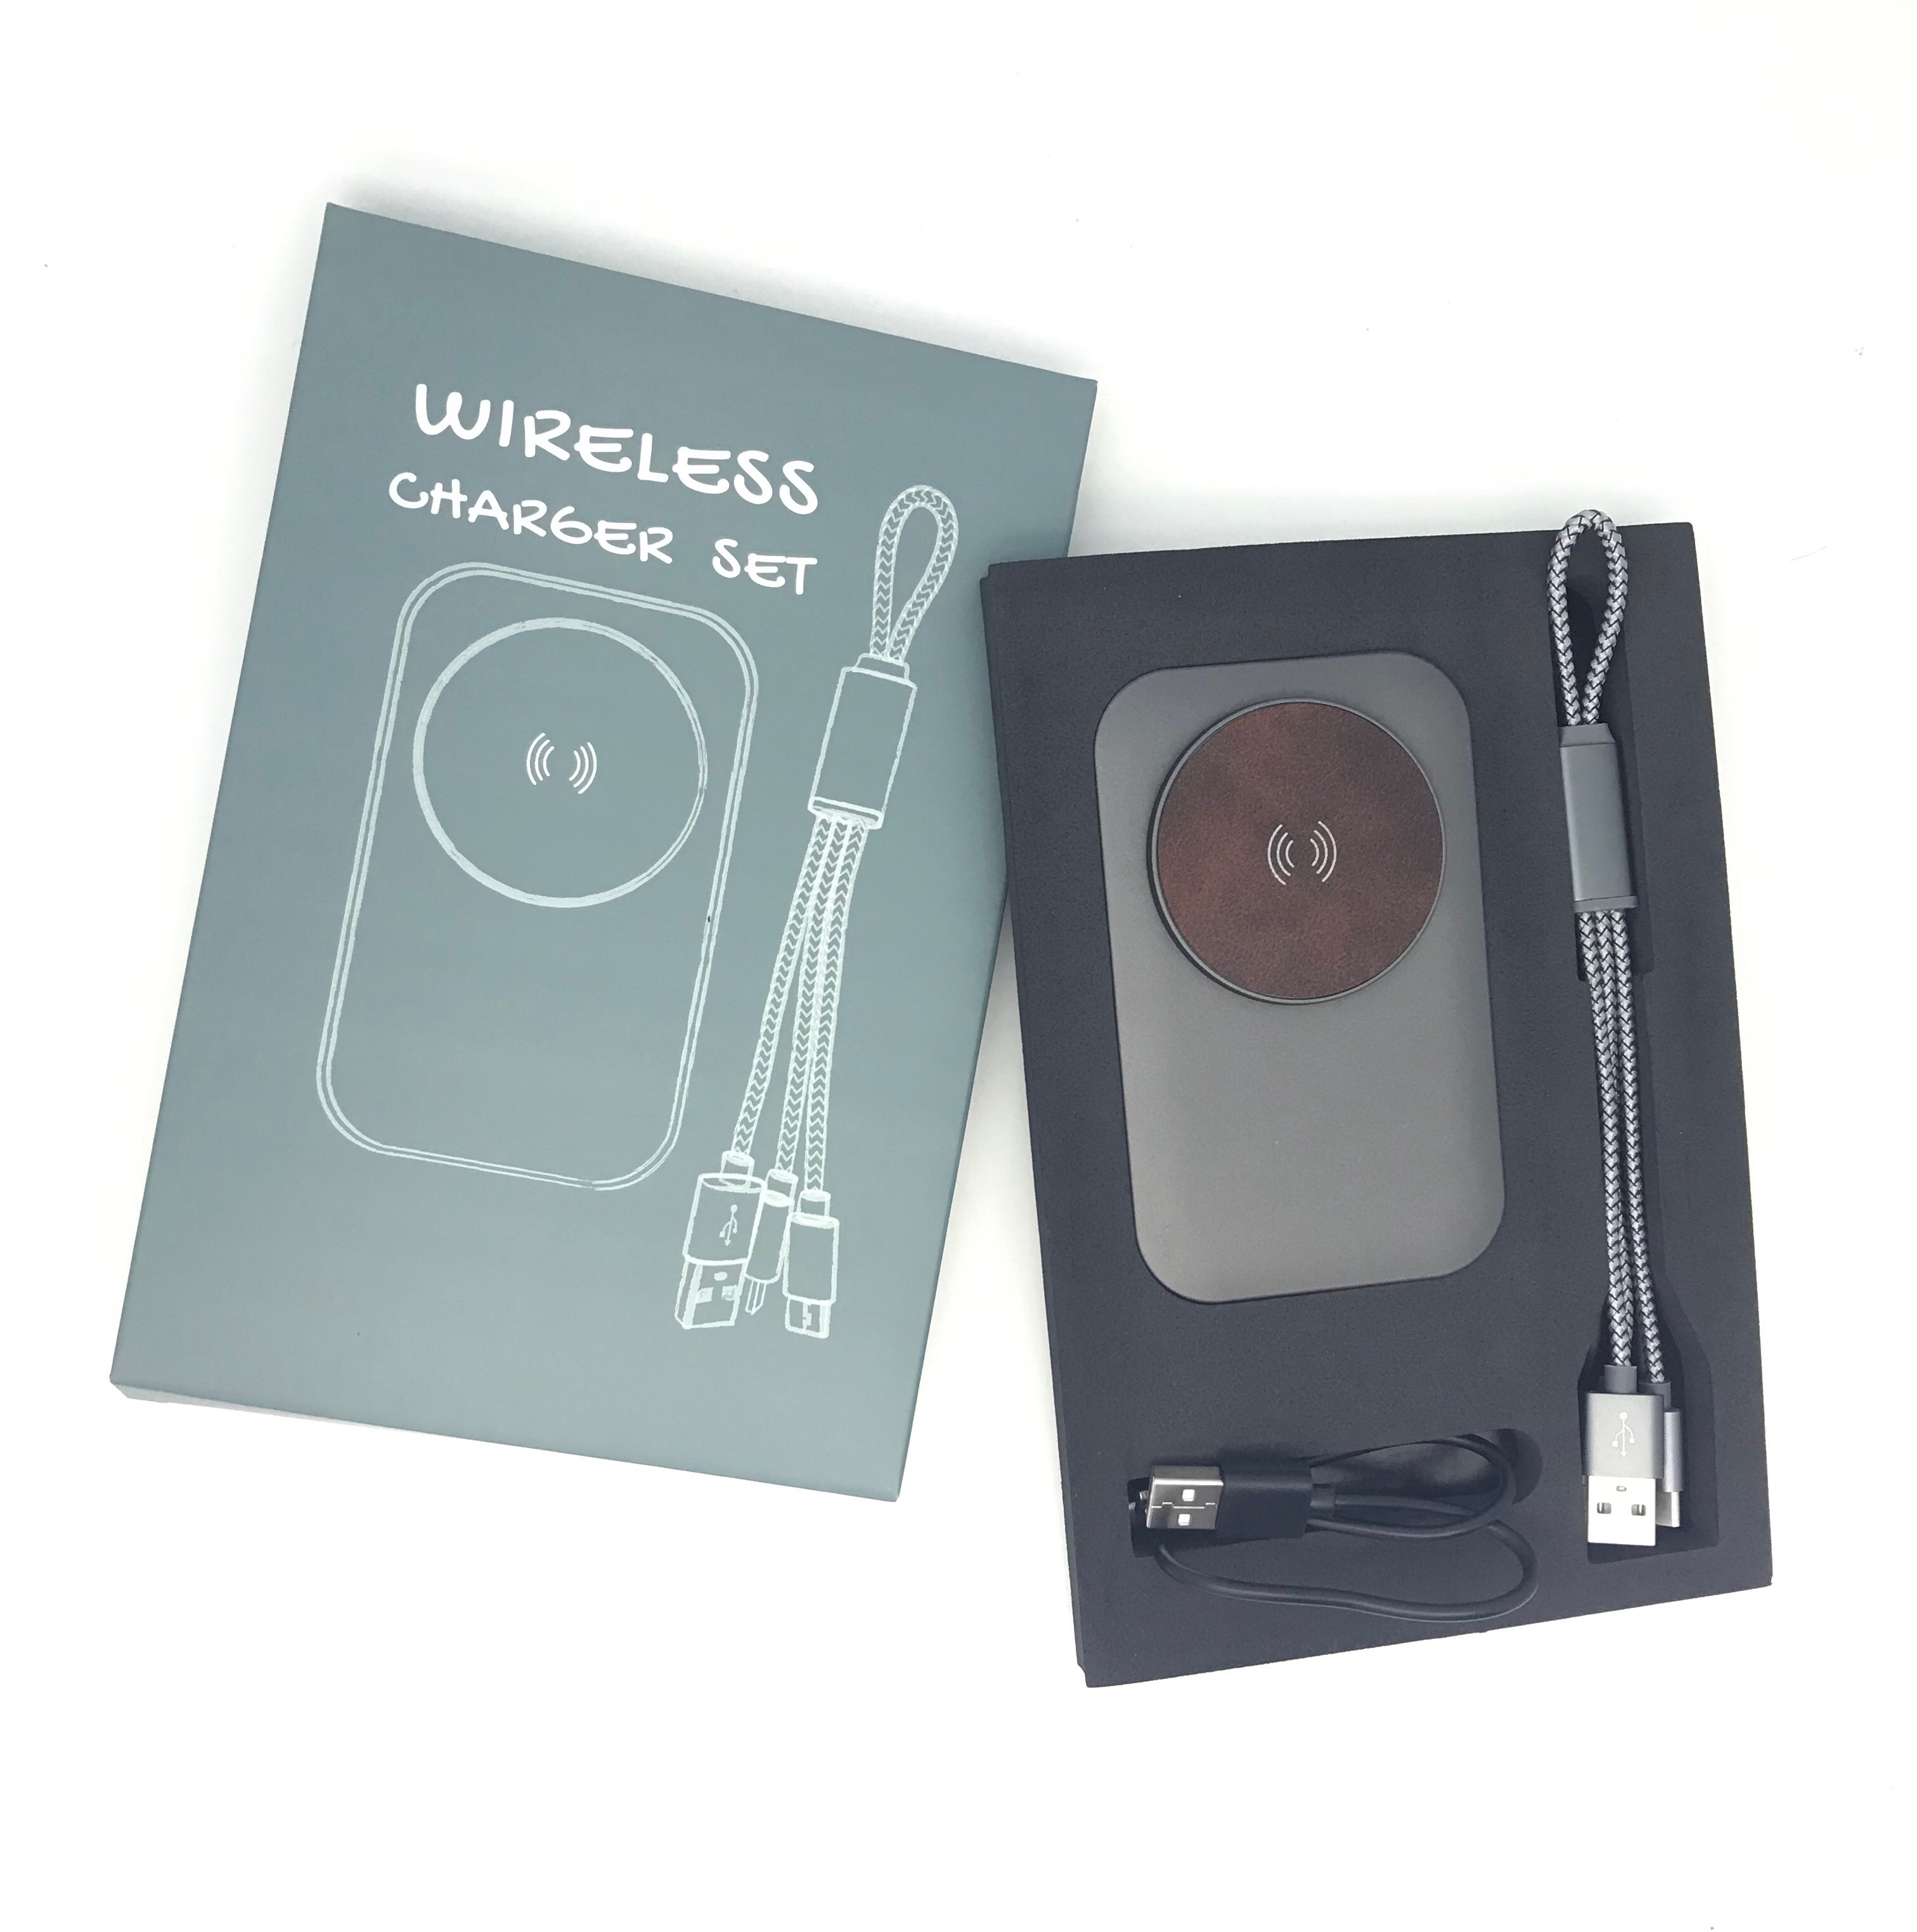 WIRELESS CHARGER SET